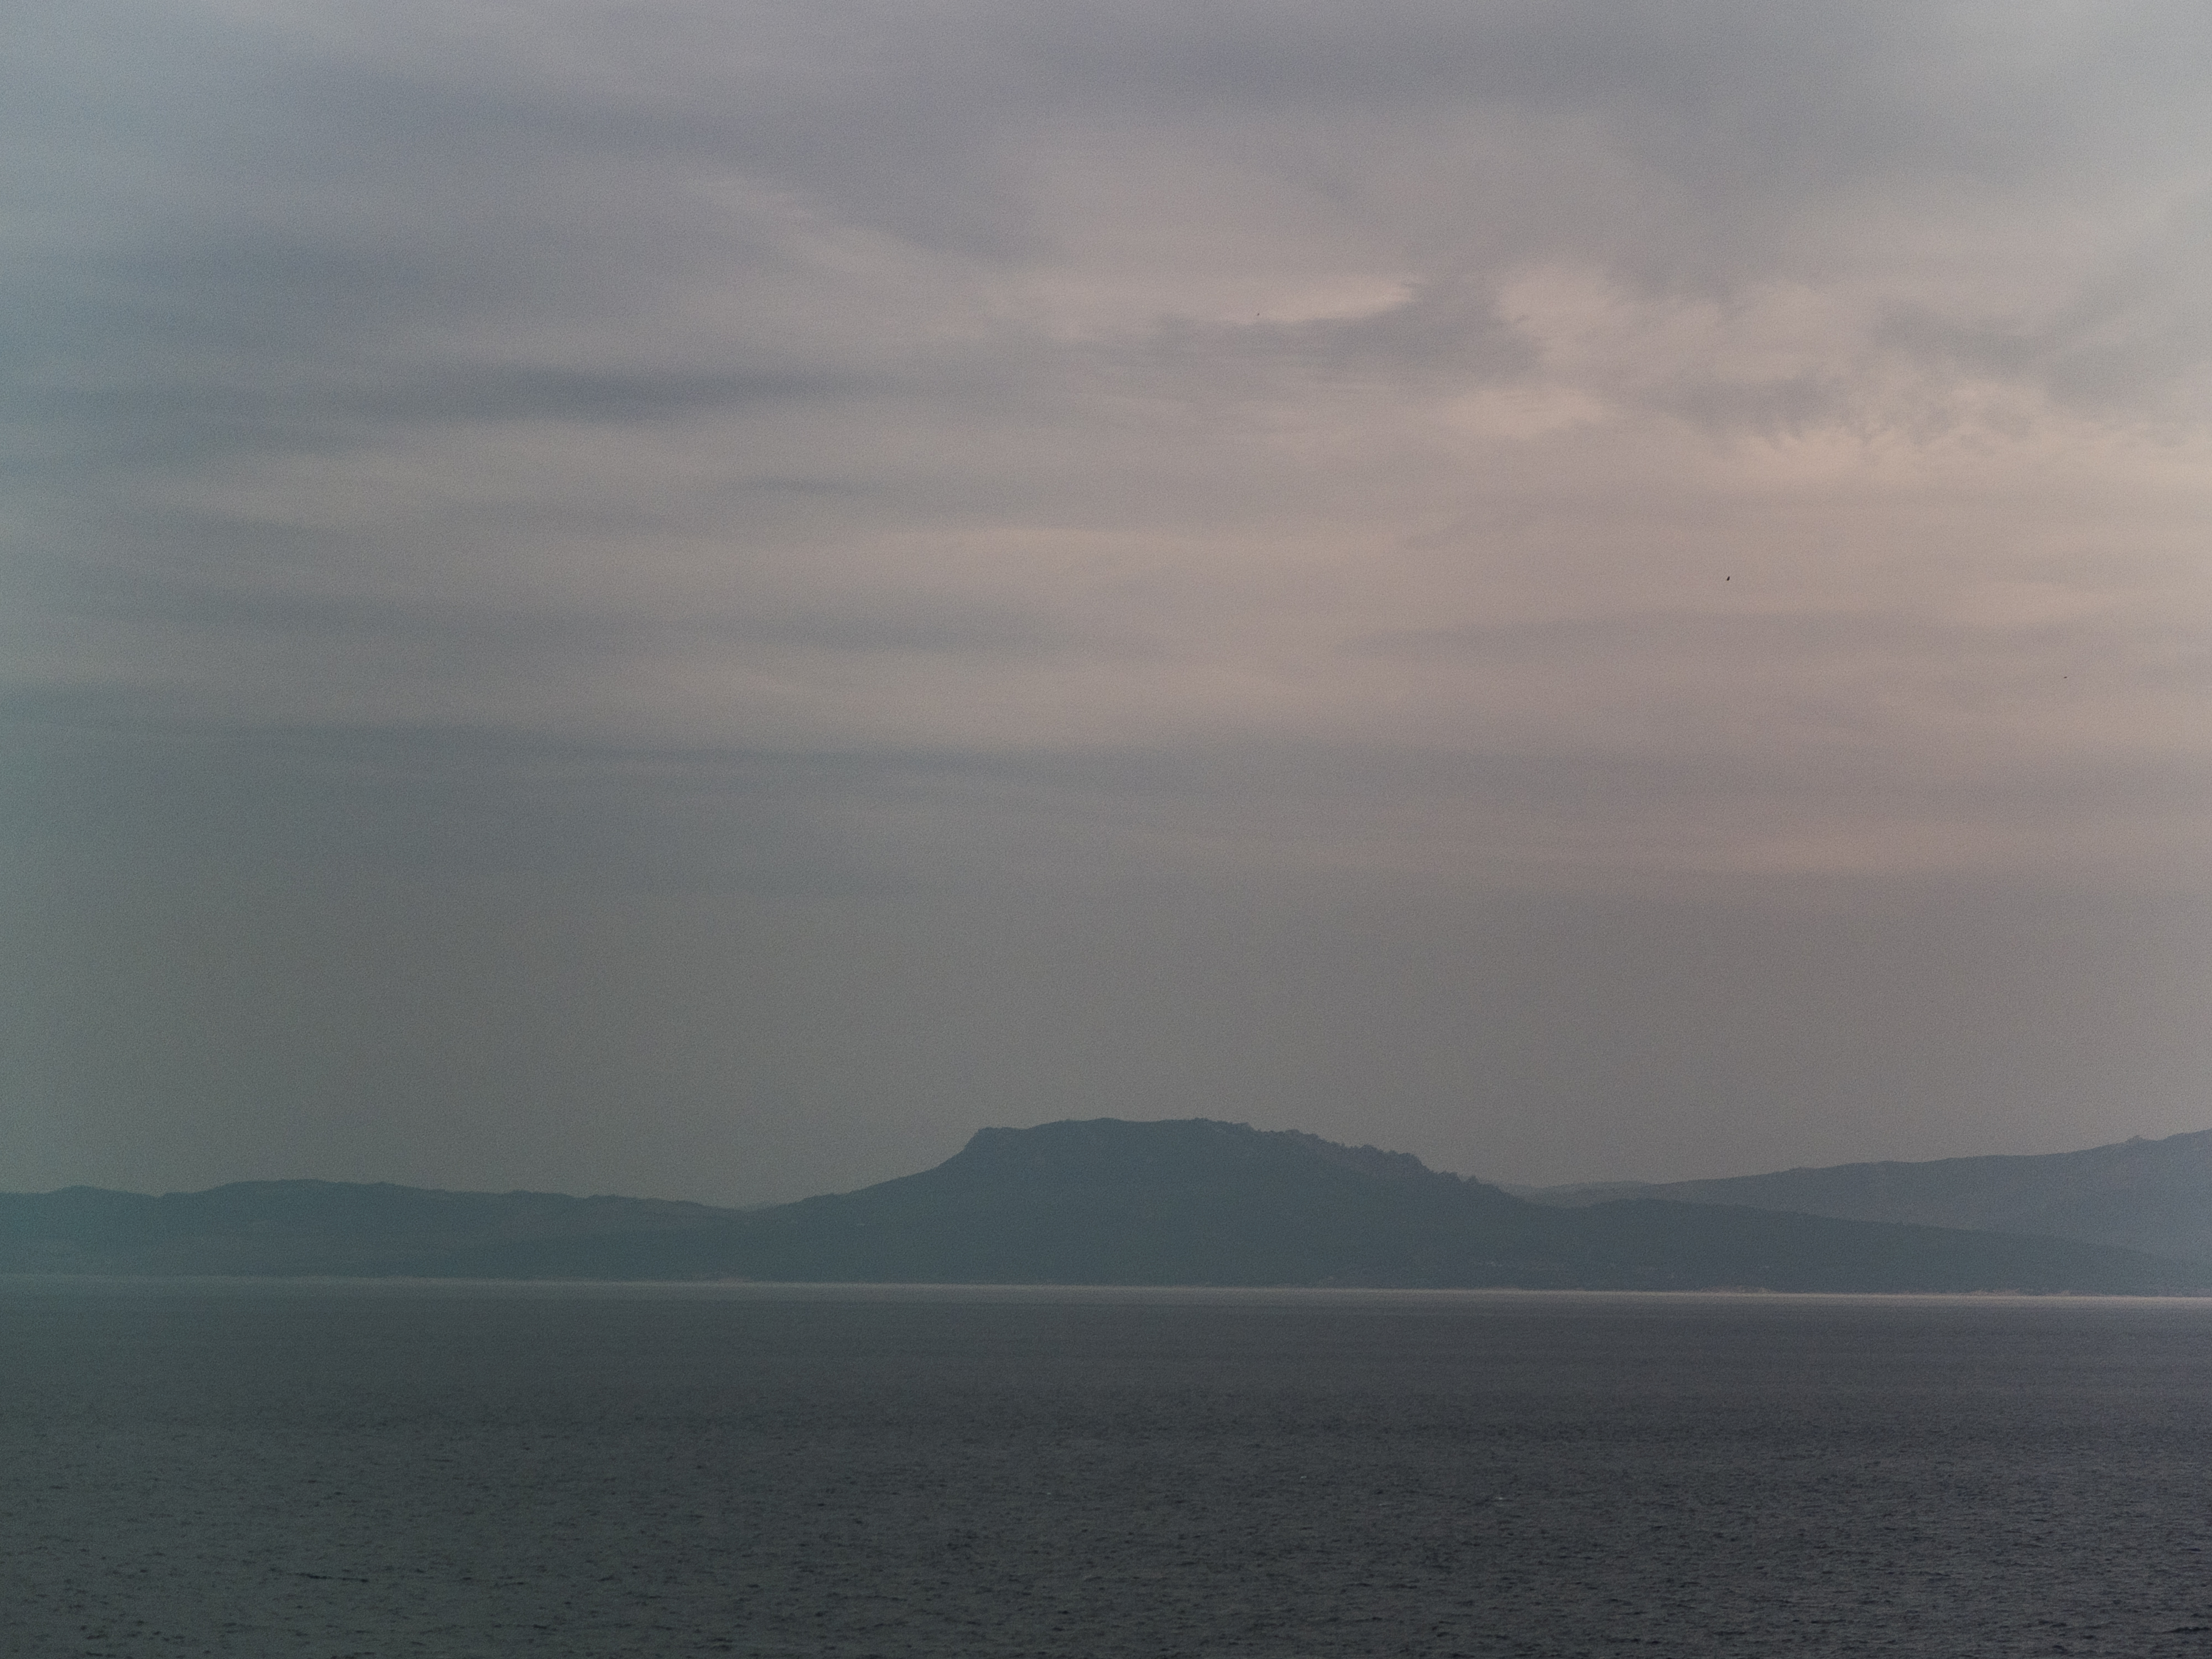 View of Africa from the Strait of Gibraltar just before sunrise.